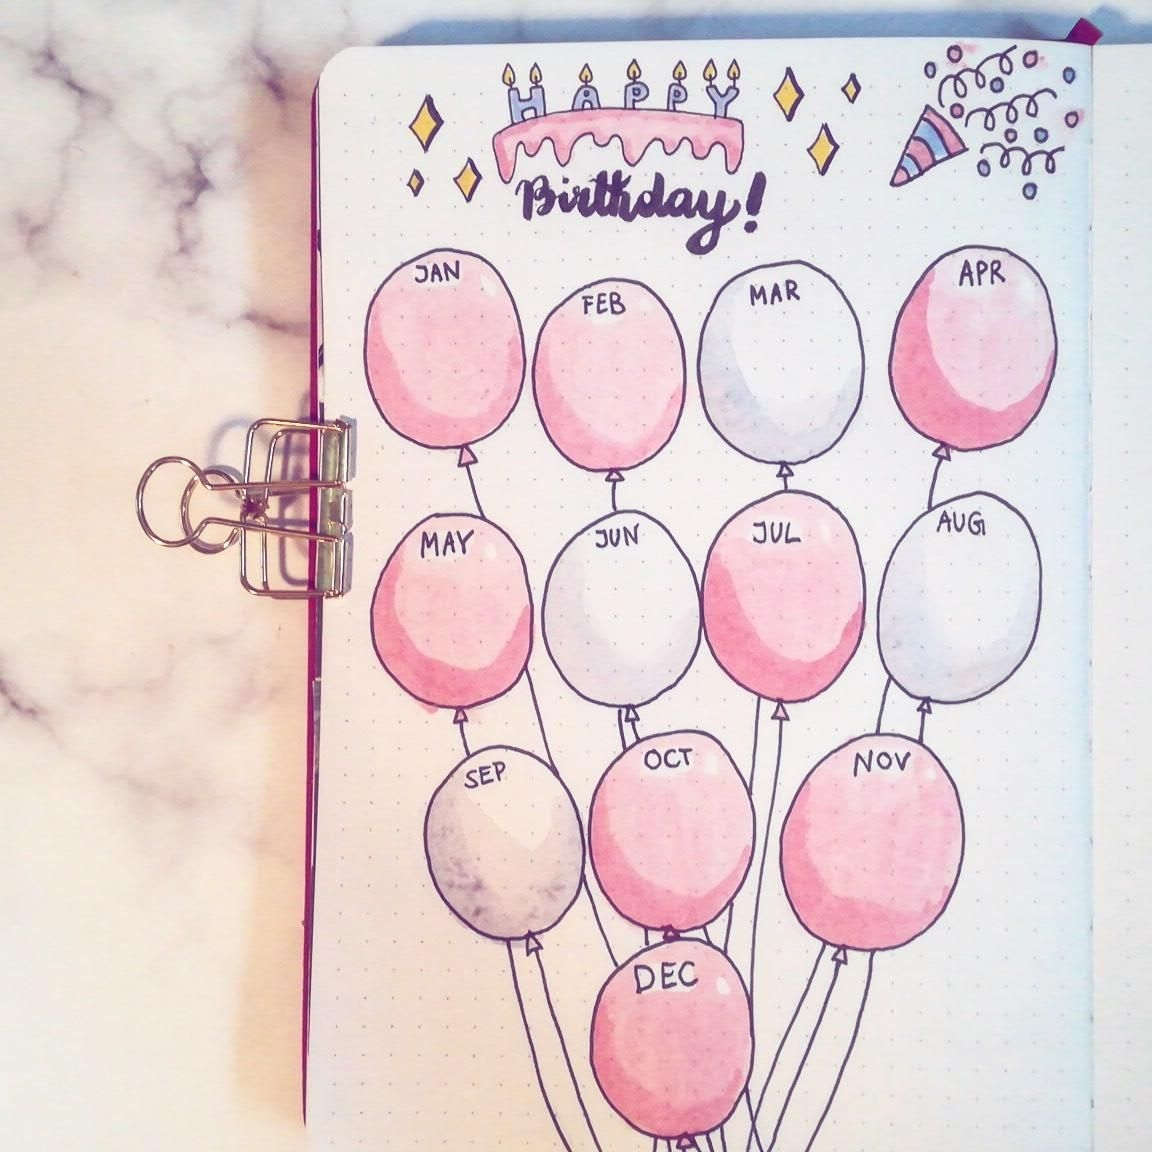 I Made A Birthday Calendar! : Bulletjournal